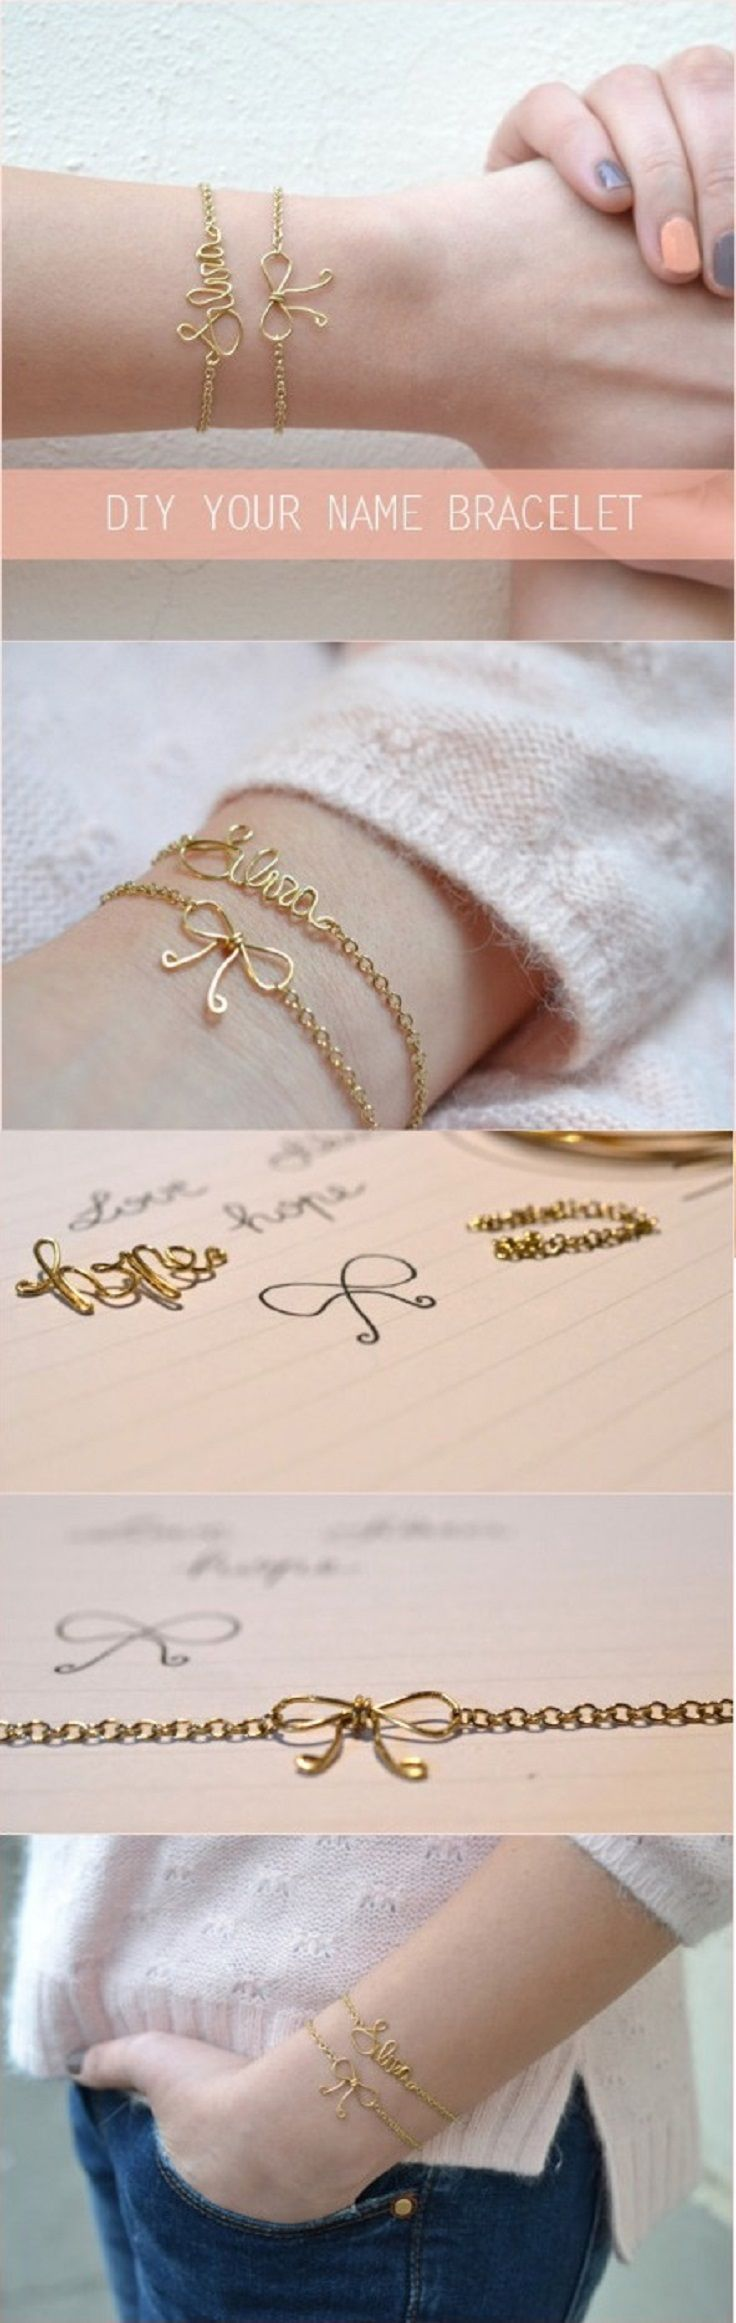 DIY Wire Bracelet : DIY Wired Bracelet DIY Jewelry DIY Bracelet -